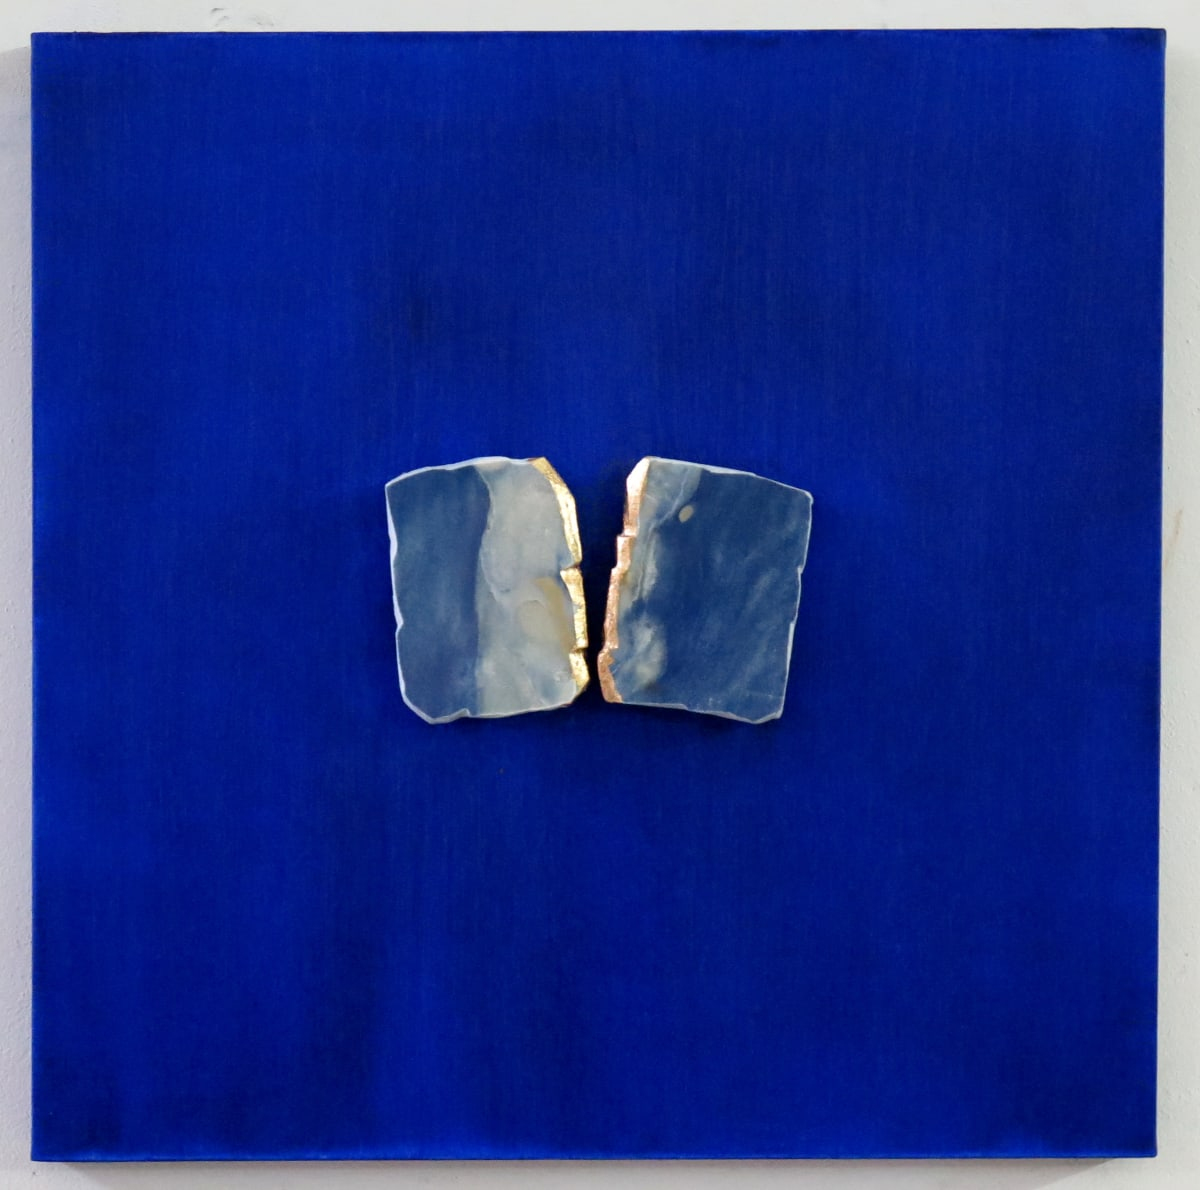 Gioni David Parra Matter Conceptual XI , 2018 Oil on canvas with azul Macaubas marble inserts and gold leaf 60 x 60 x 7 cm 23.6 x 23.6 x 2.8 in